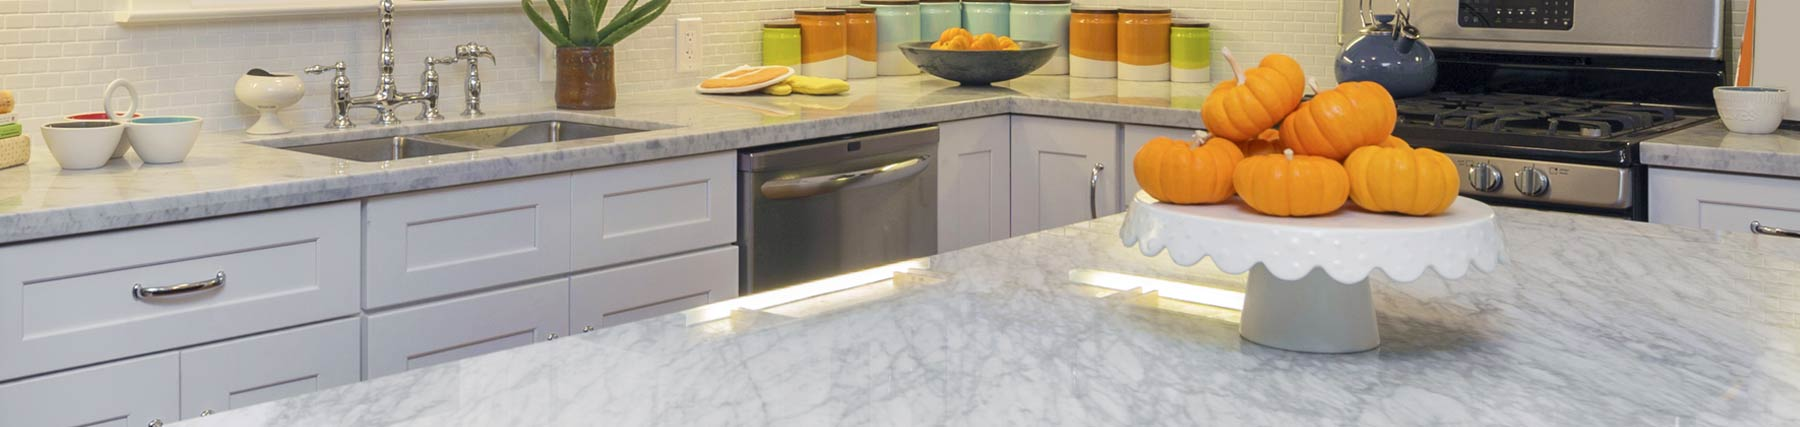 Granite Colors For Kitchen Countertops As Per Vastu : ... Texas Granite Countertops Starting at $7.95 Per Sf Texas Granite Group